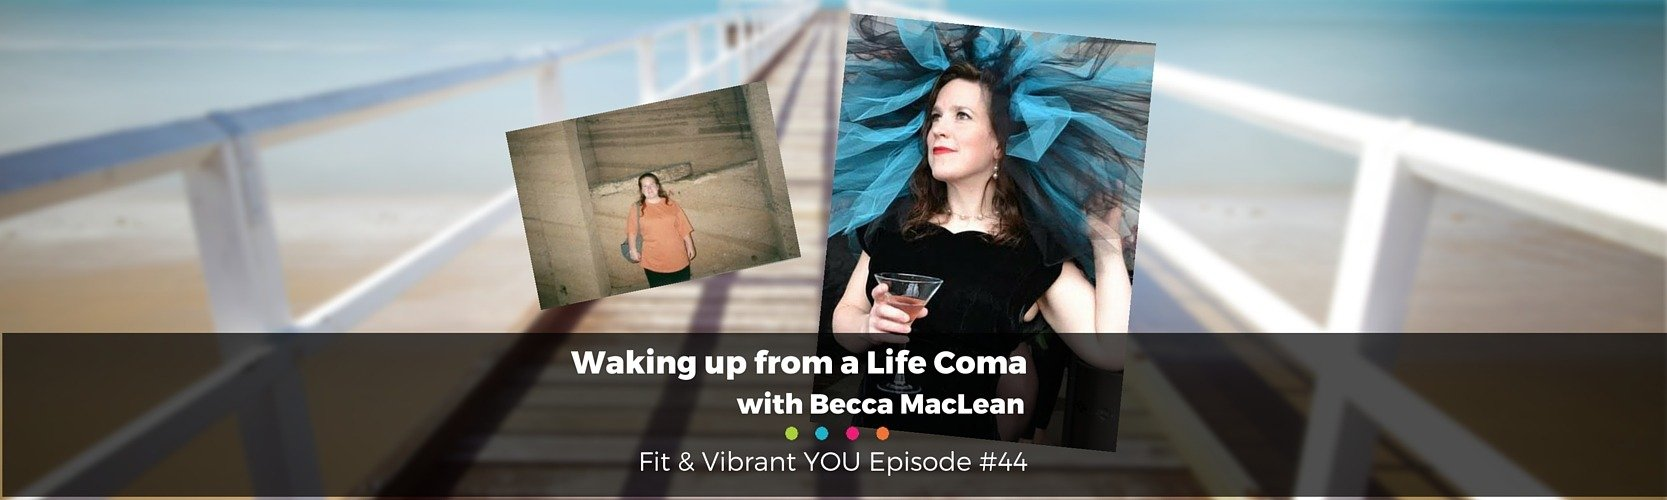 FVY 44: Waking up from a Life Coma with Becca MacLean